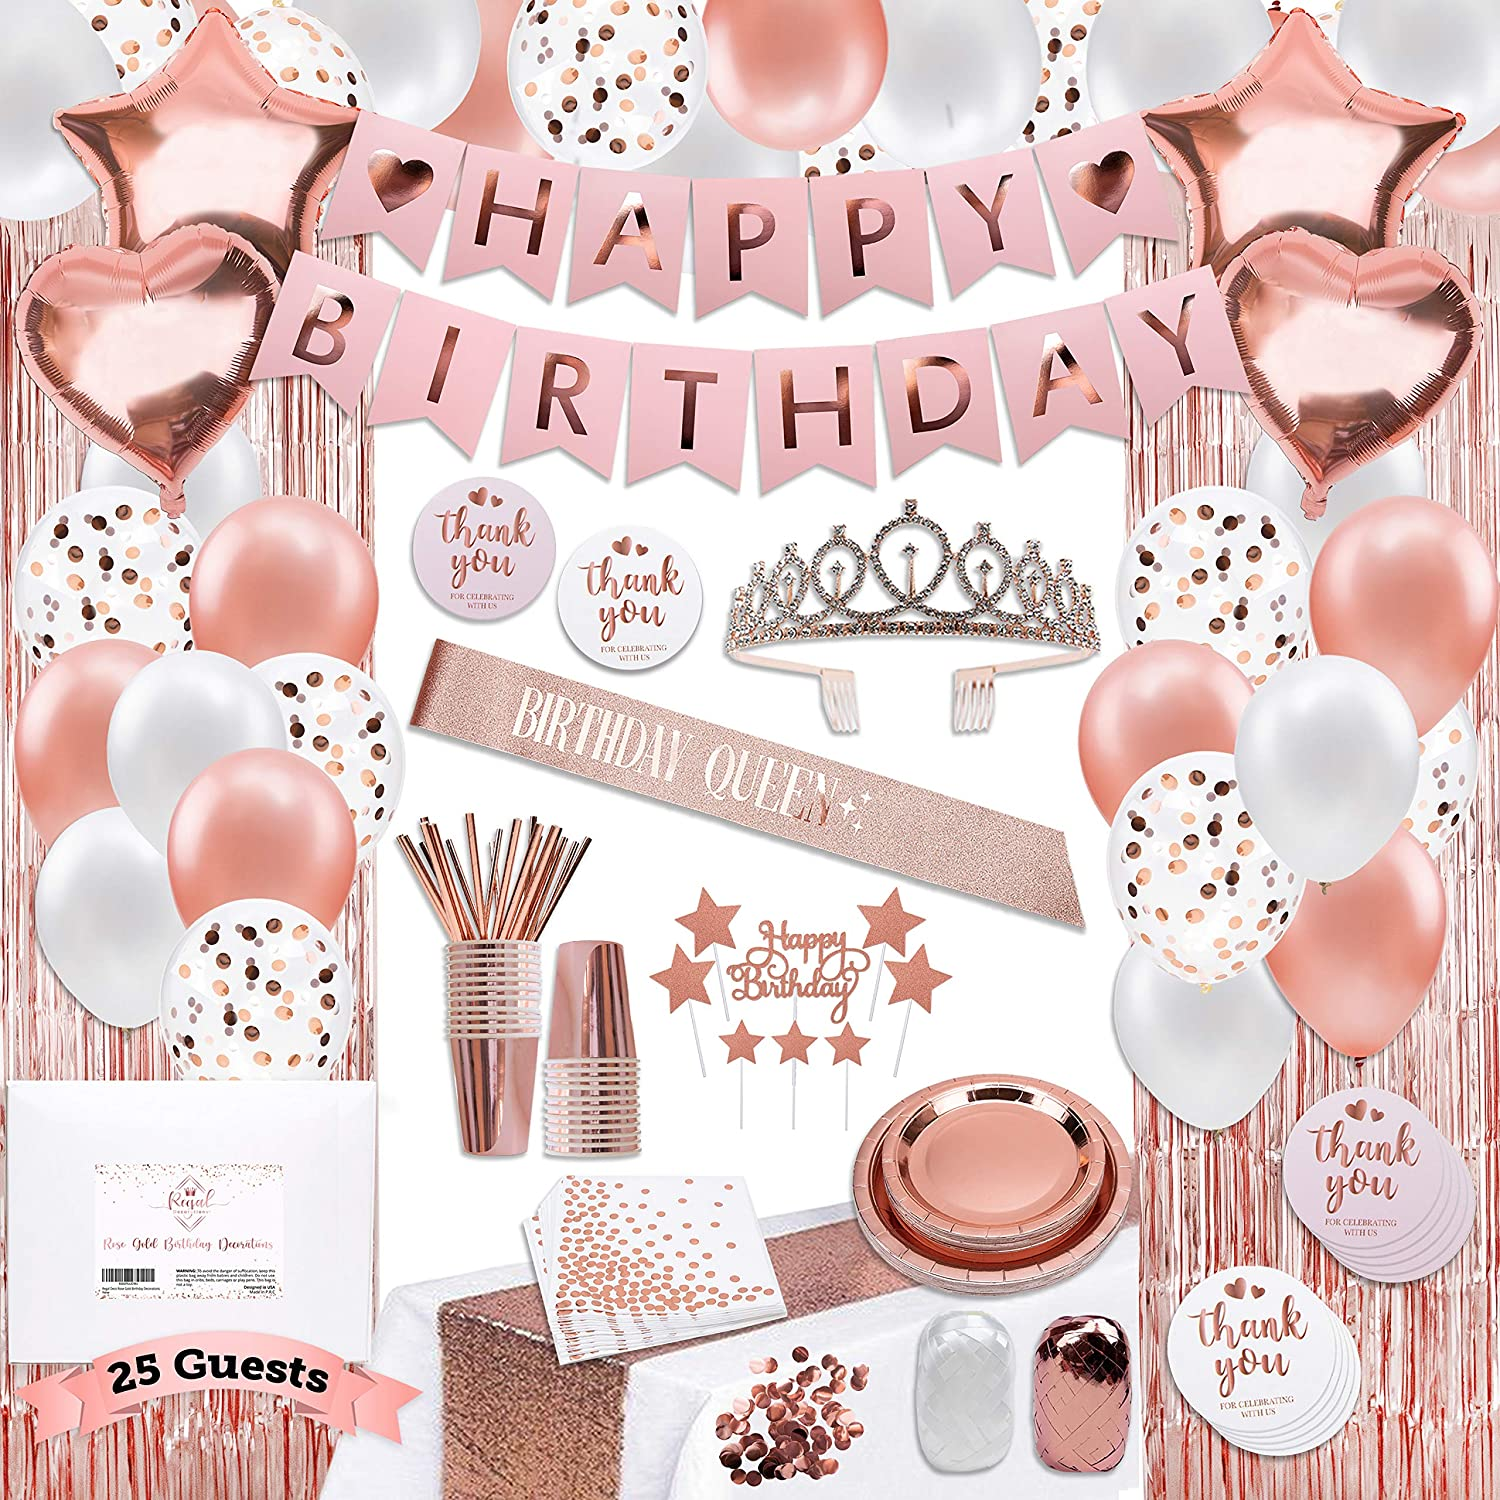 225 PC Rose Gold Birthday Party Decorations Kit for Girls, Teens, Women - Happy Birthday Banners, Curtains Table Runner Balloons, Sash Tiara Cake Topper Plates Cups Napkins Straws for 25 Guest & More